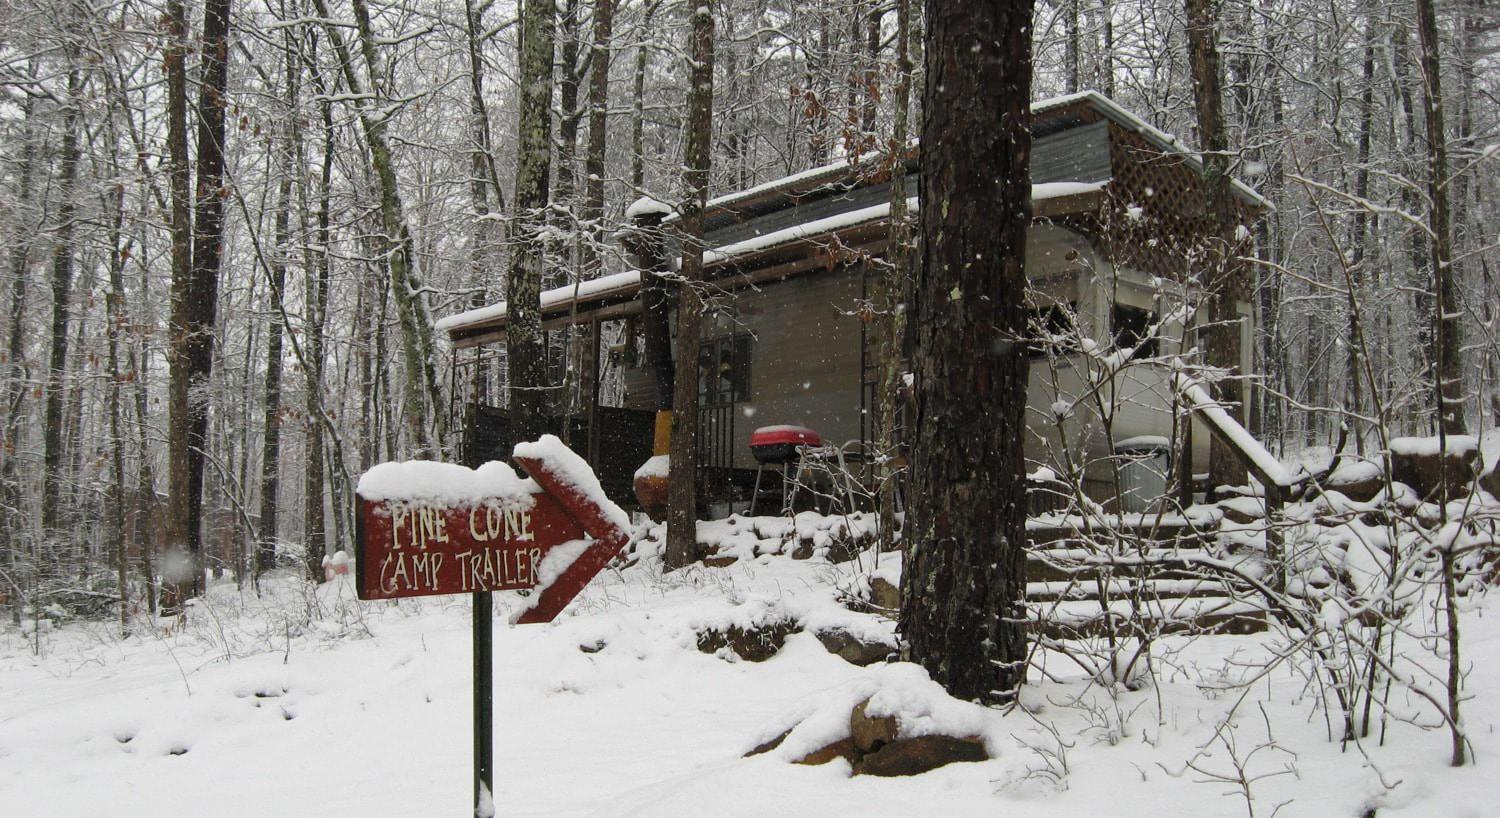 Exterior view of the cabin in the winter surrounded by white snow and the woods with bare trees